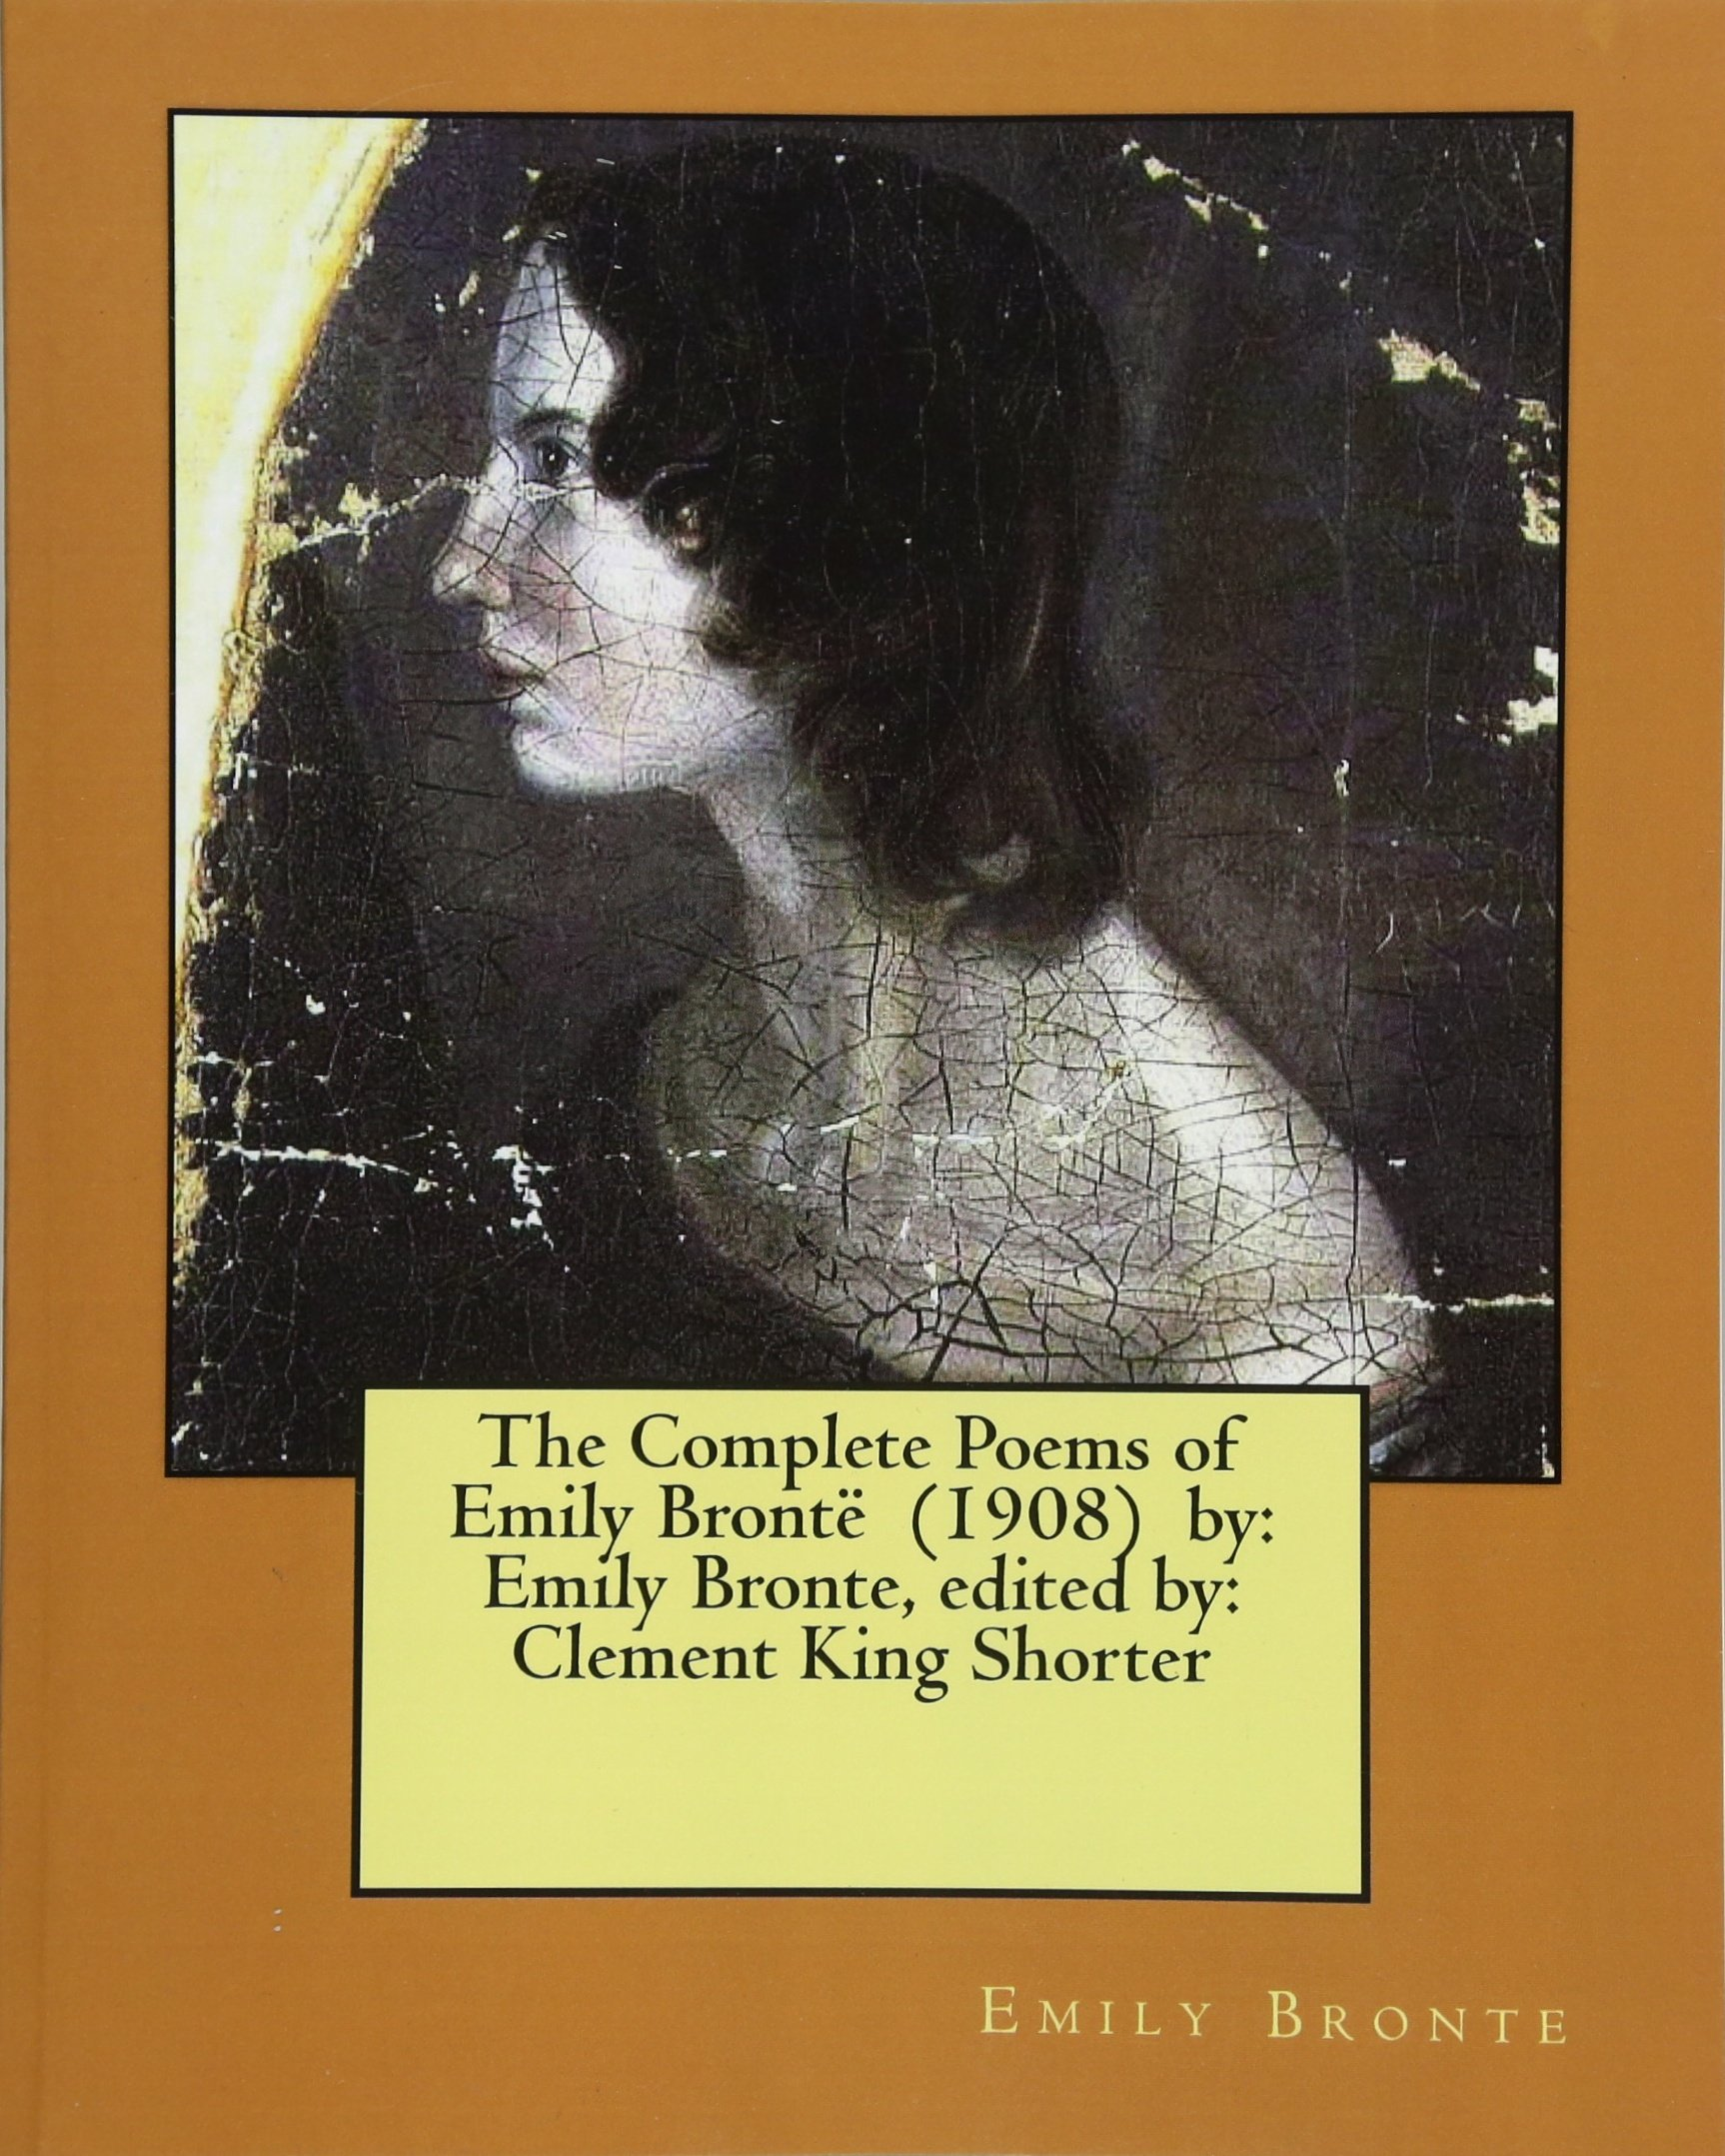 The Complete Poems of Emily Brontë (1908) by: Emily Bronte, edited by: Clement King Shorter